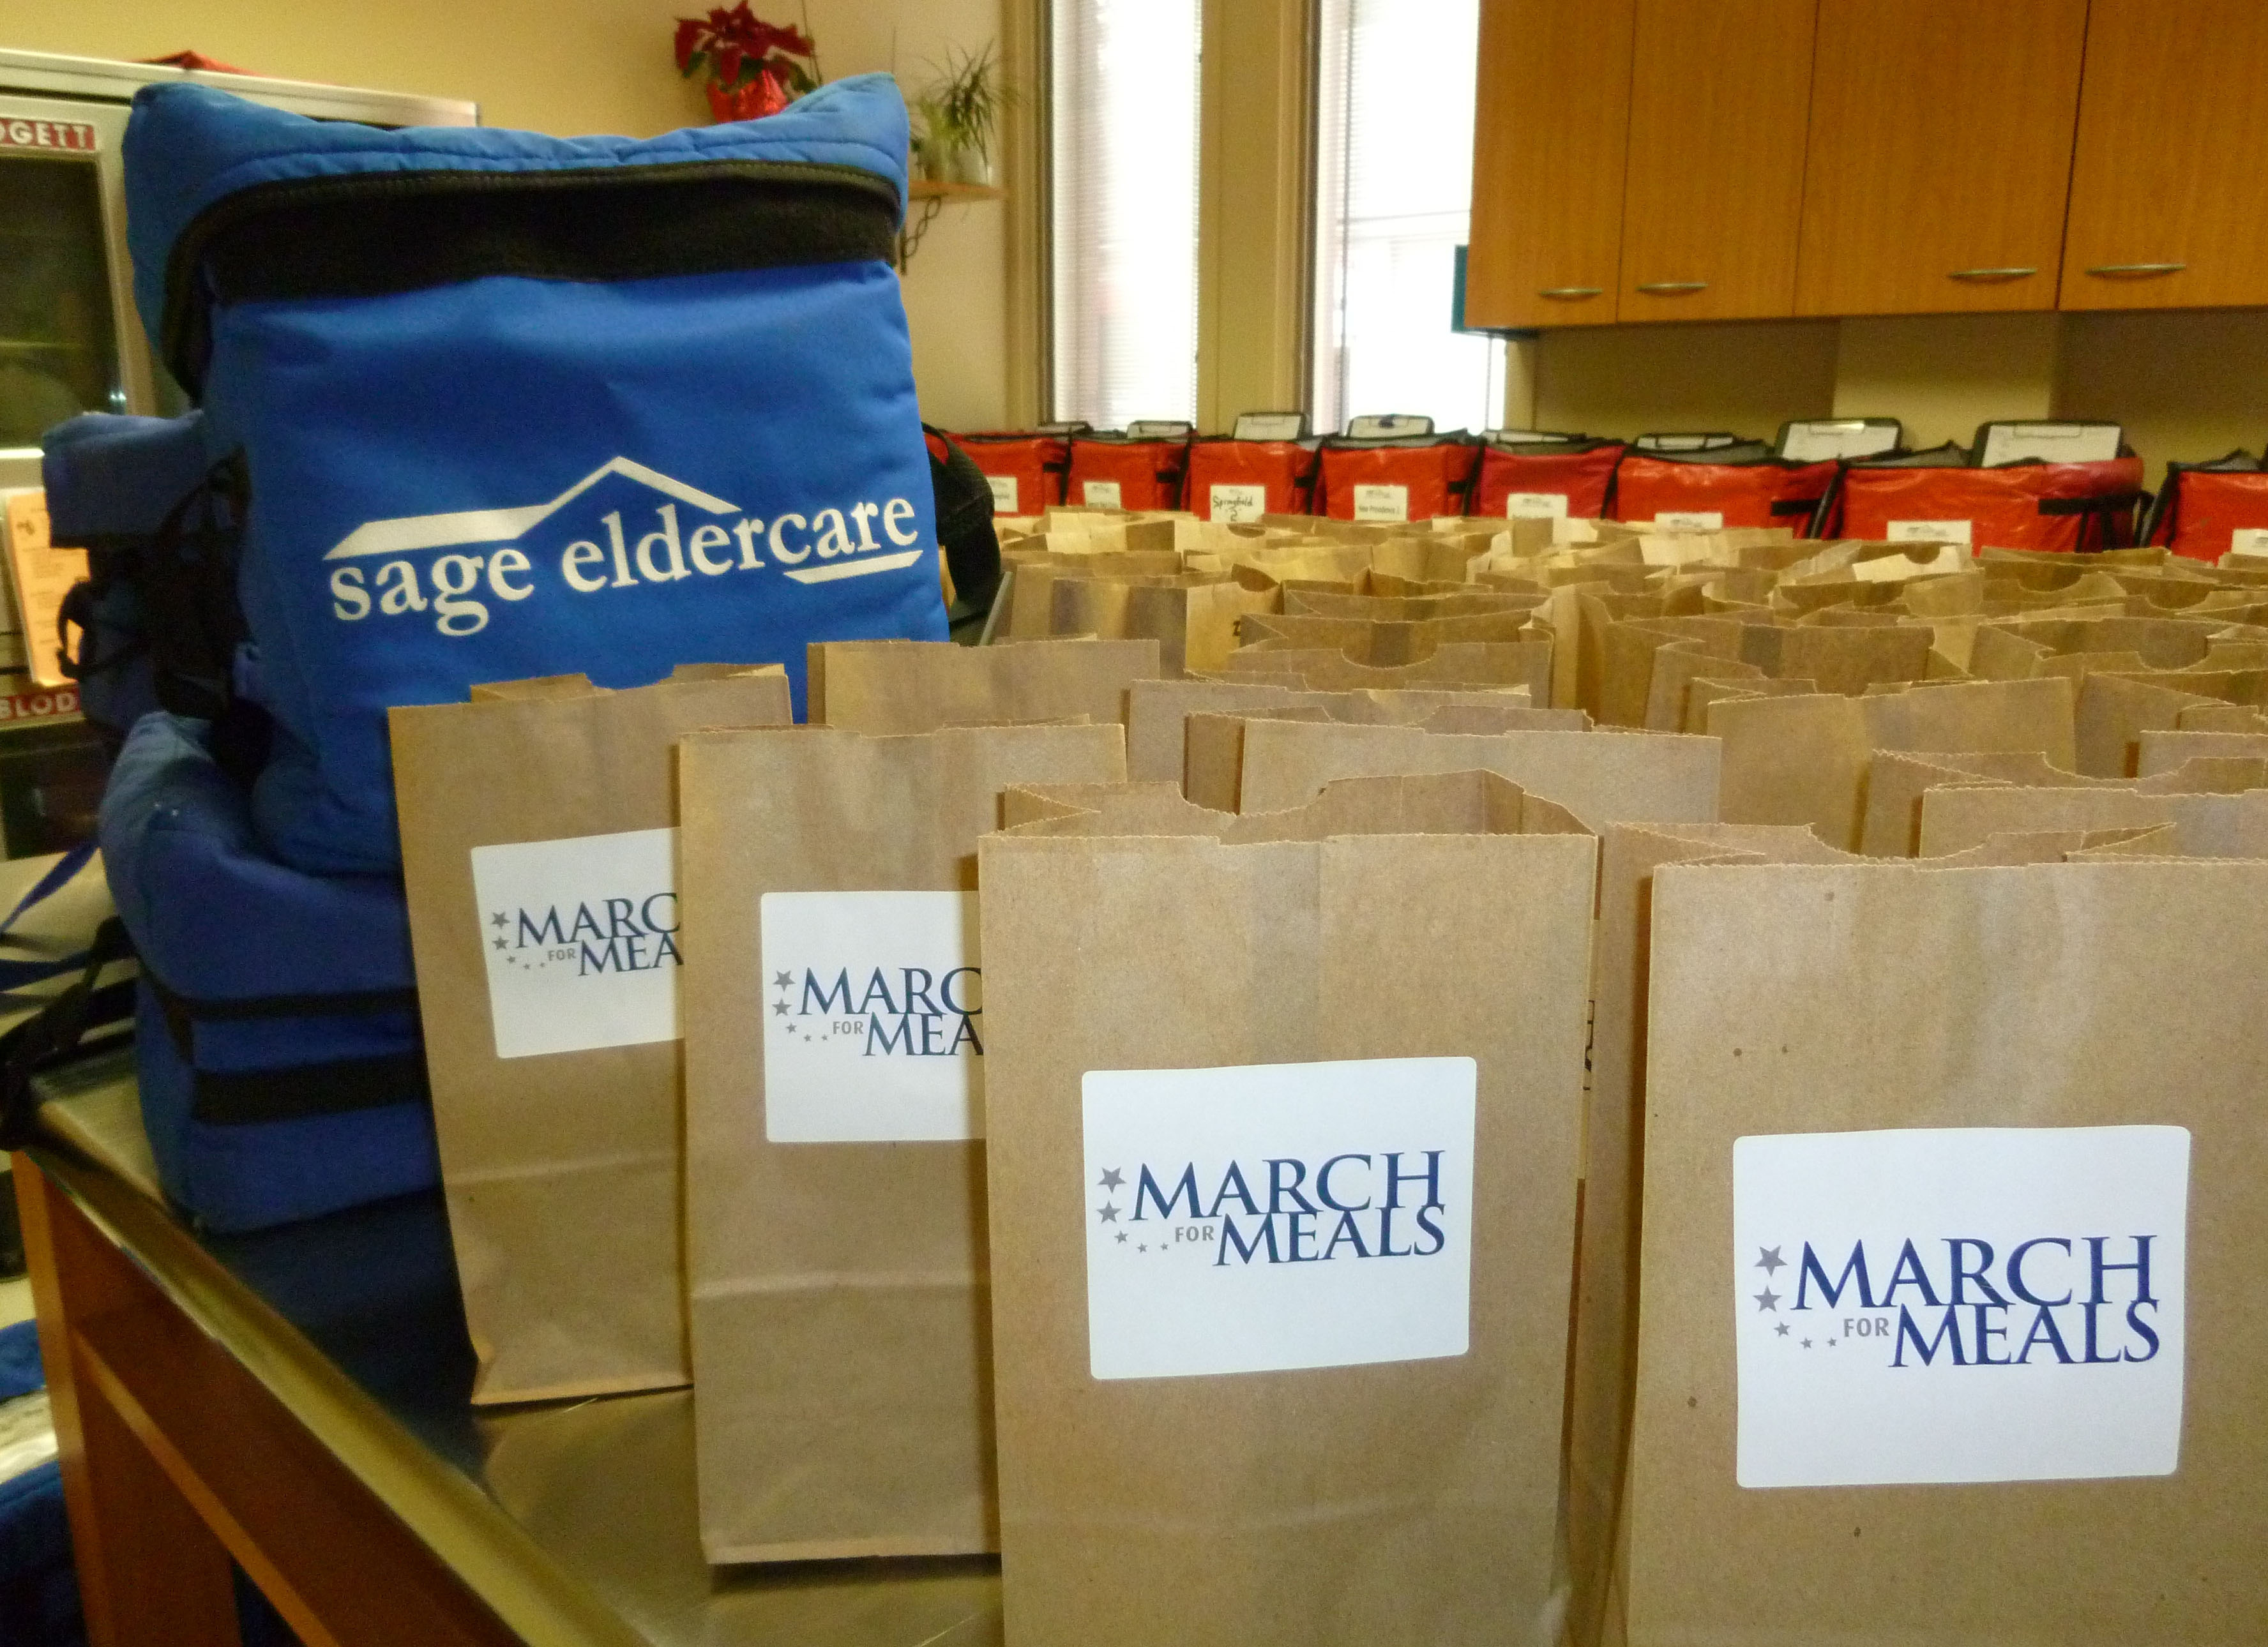 24524a4de3bc11febedf_March_For_Meals_2012_Photo_-_Bags.jpg